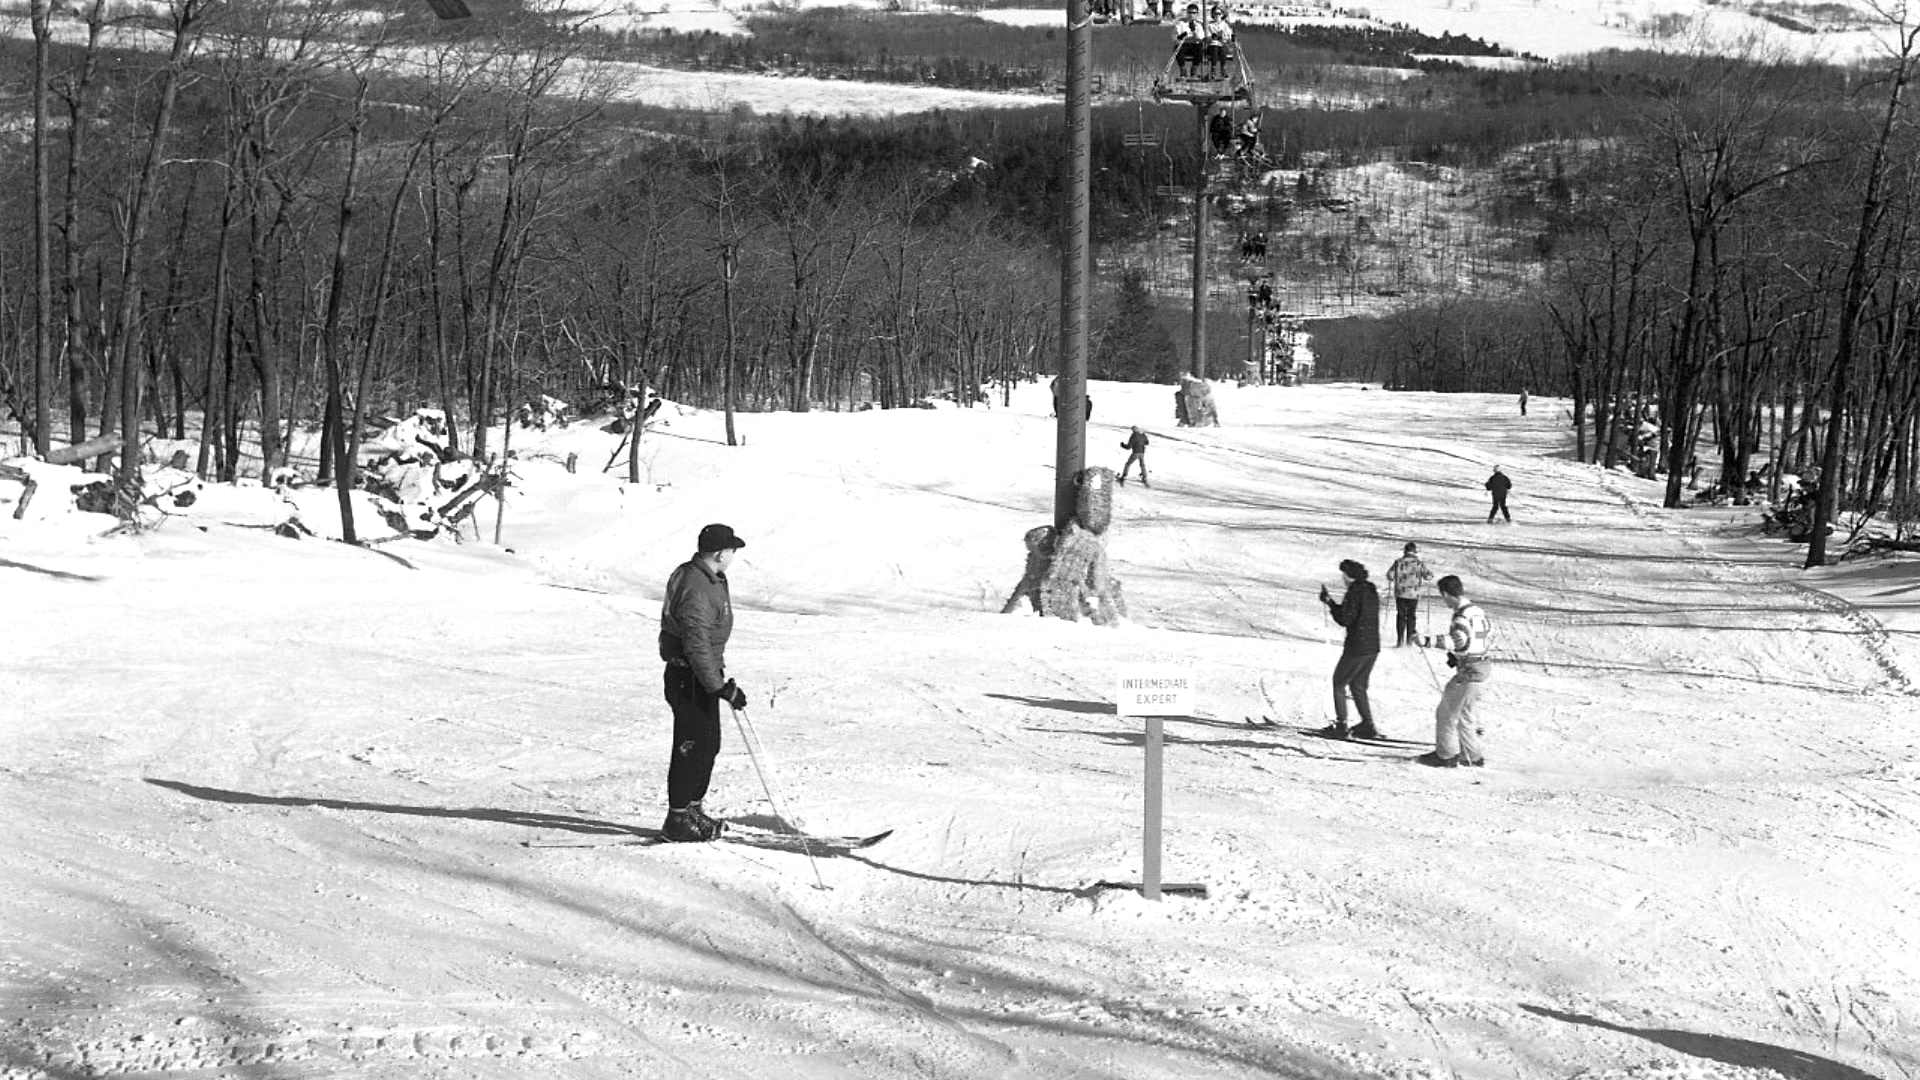 Take a trip down the slopes of Mt. Tom Ski Area, a gone but not forgotten landmark in Holyoke, MA that operated for nearly 35 years before closing in 1998.